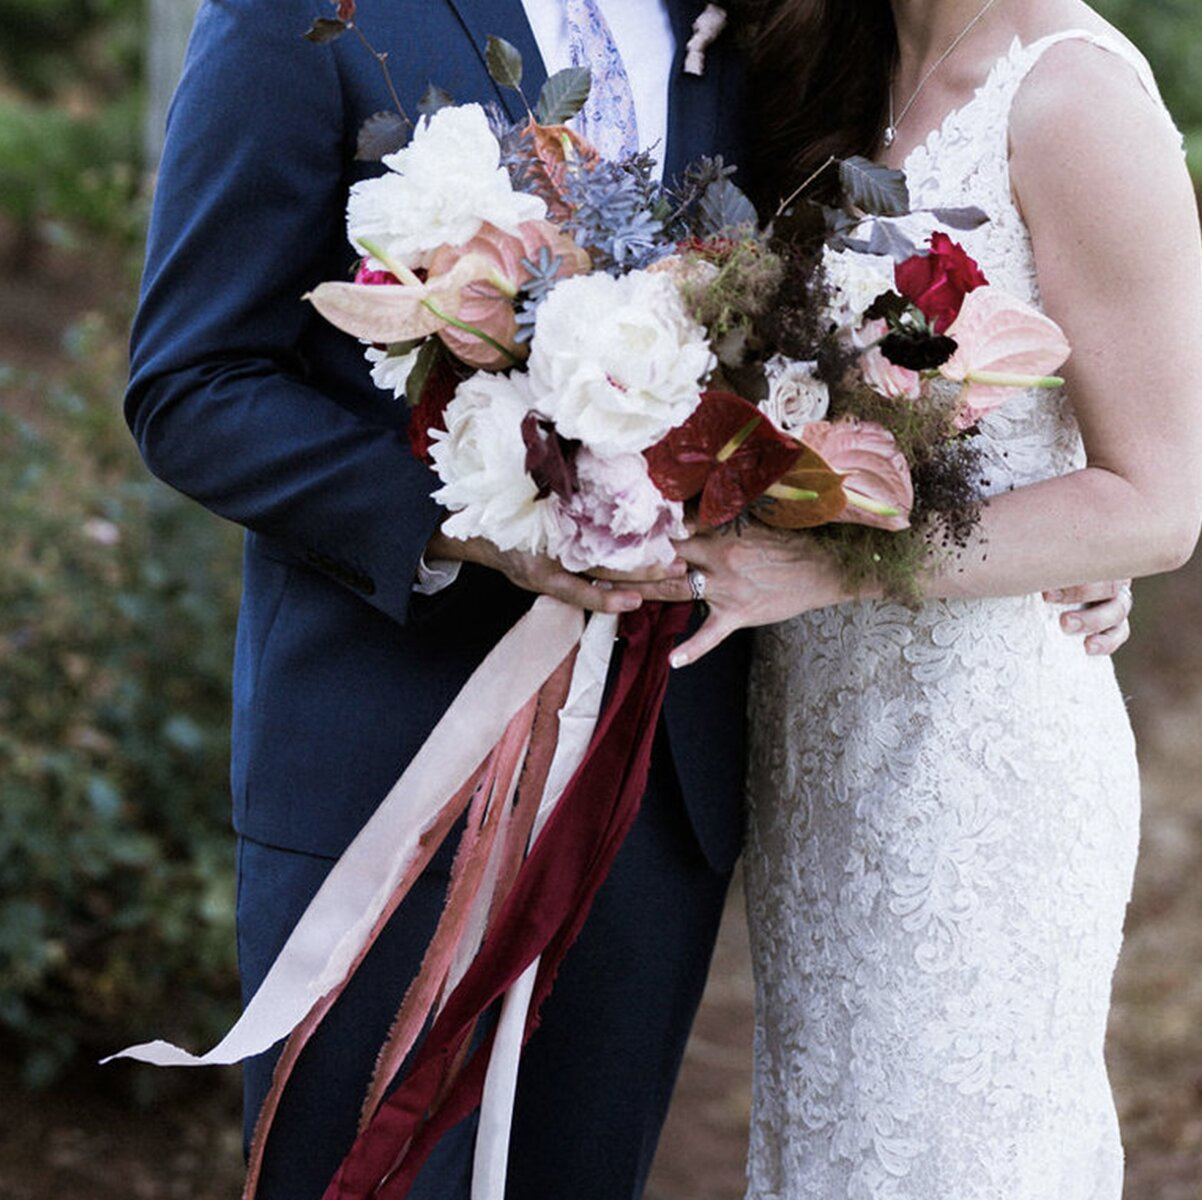 sydney-wedding-florist-flowers-packages-prices-cost-how-much-affordable-silk-ribbon-trailing